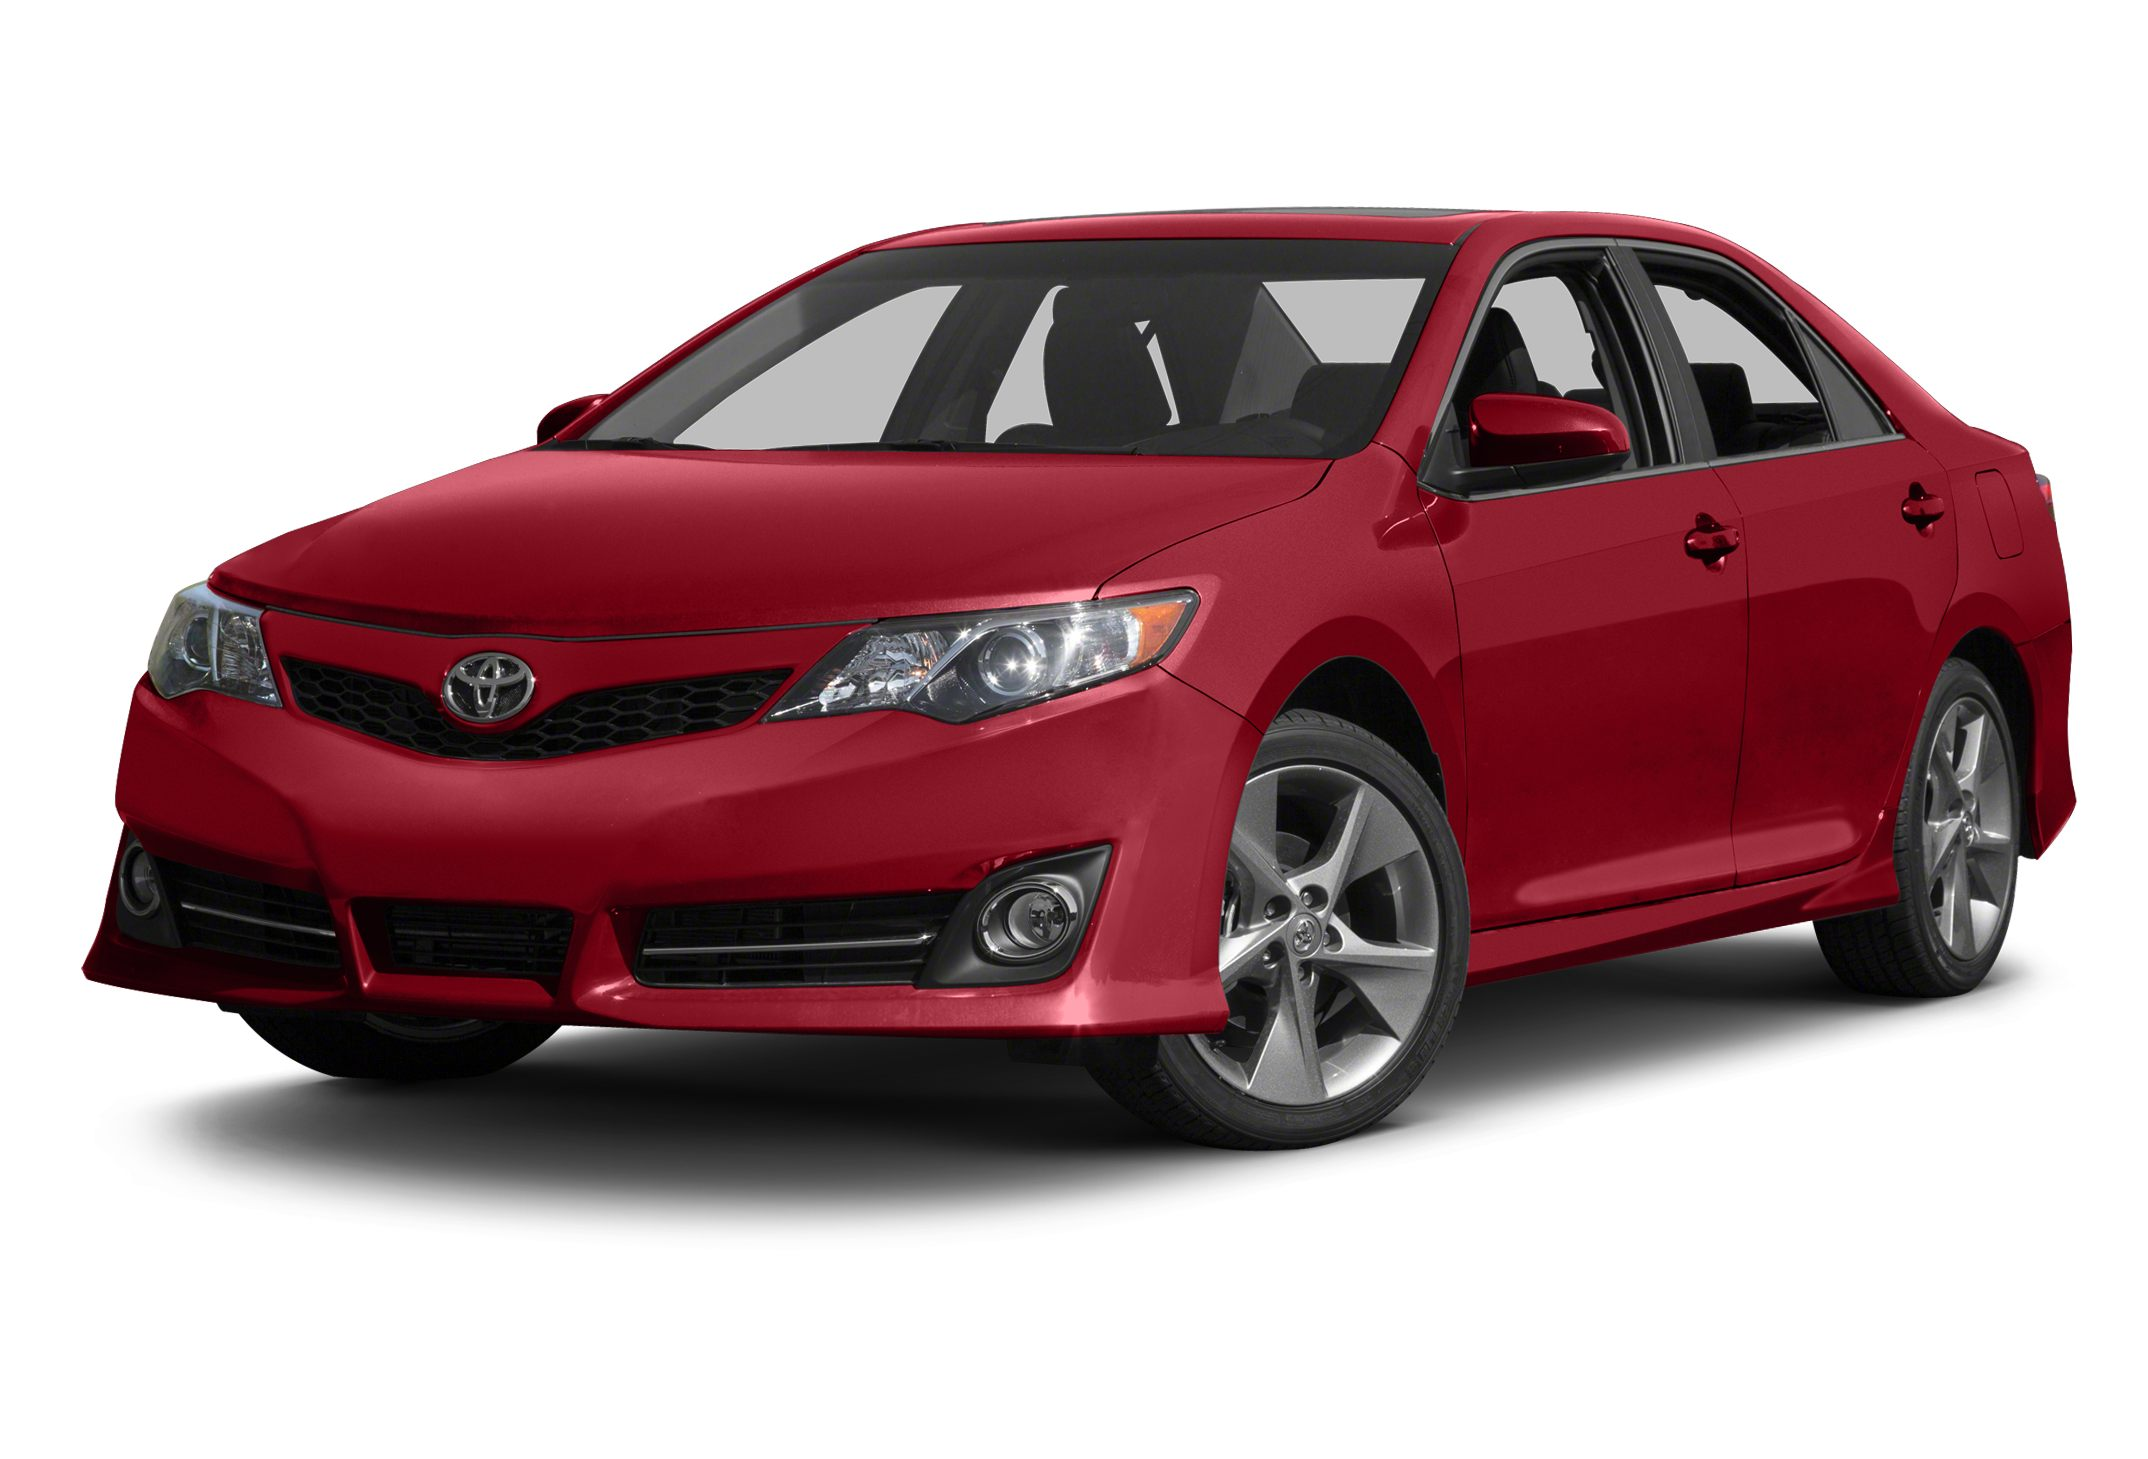 2012 Toyota Camry SE Sedan for sale in Walla Walla for $21,225 with 38,583 miles